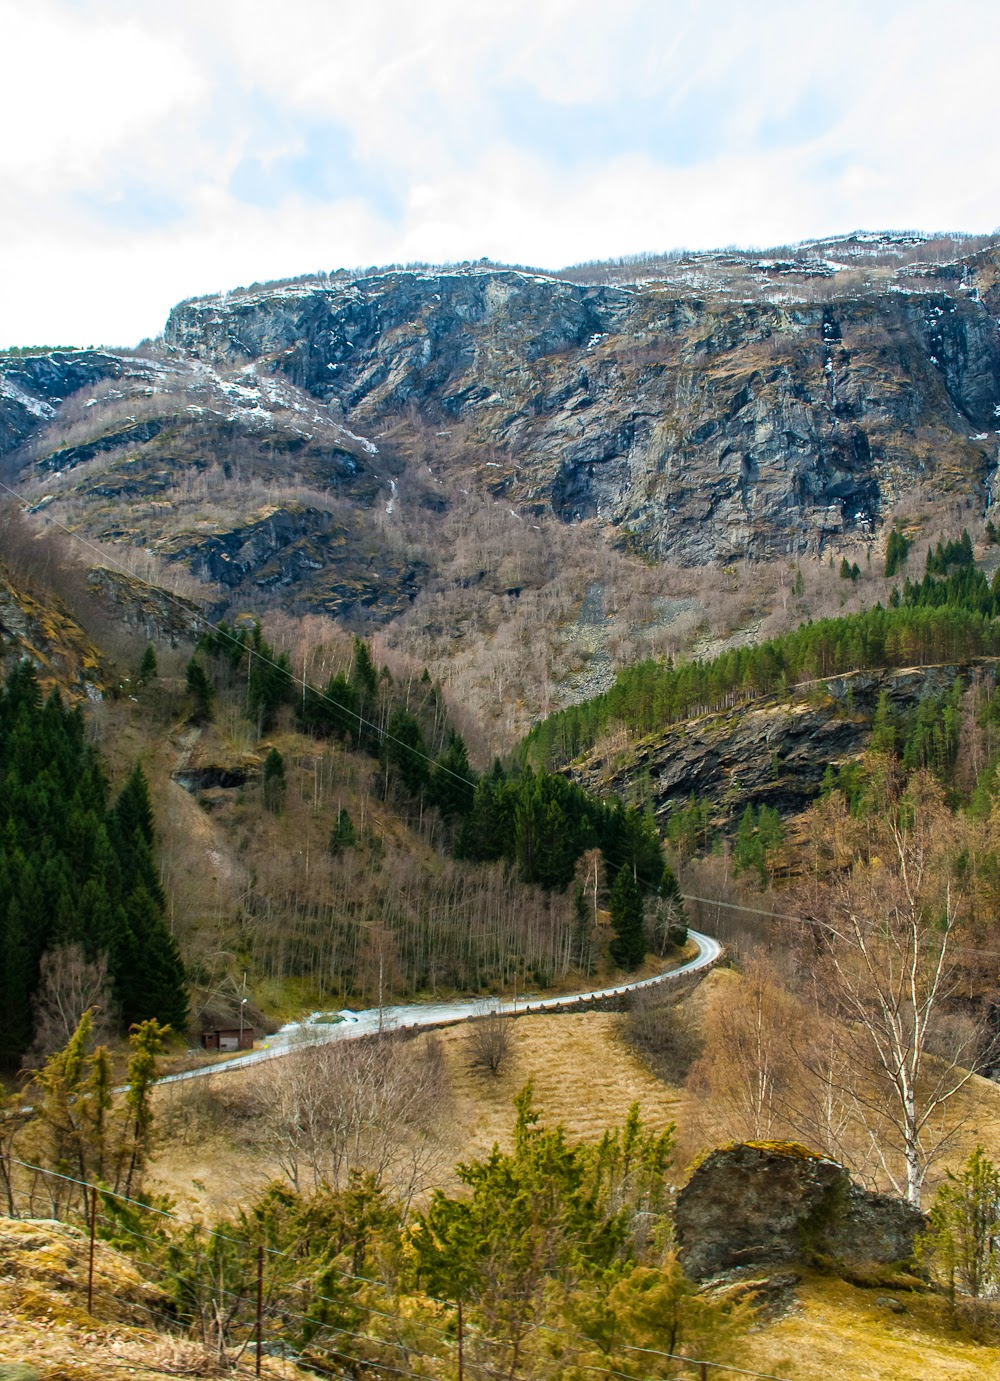 The scenic views from the flam railway